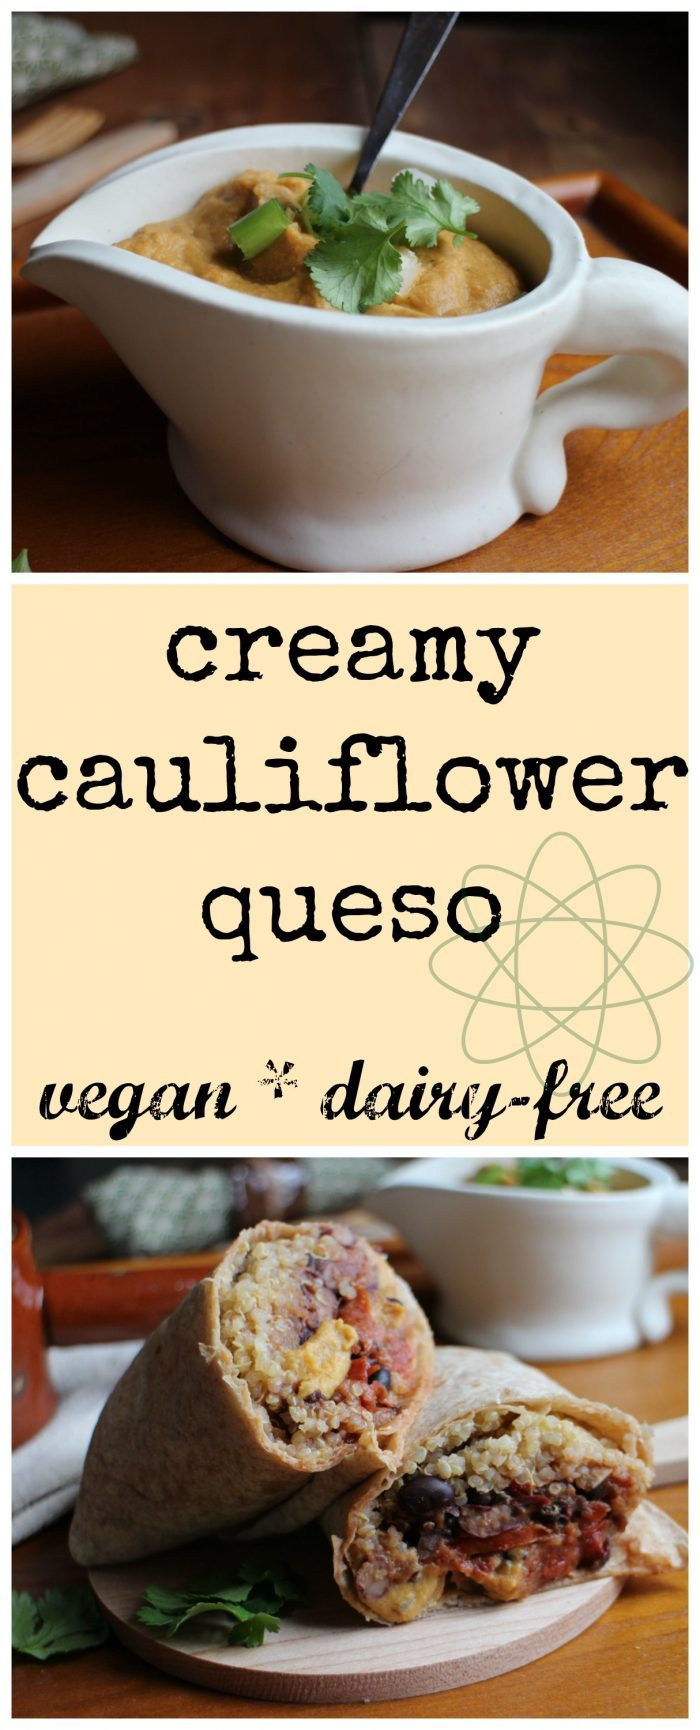 Creamy cauliflower queso: This protein-packed queso is entirely vegan & dairy-free. It gets its creaminess from cauliflower & white beans. | cadryskitchen.com